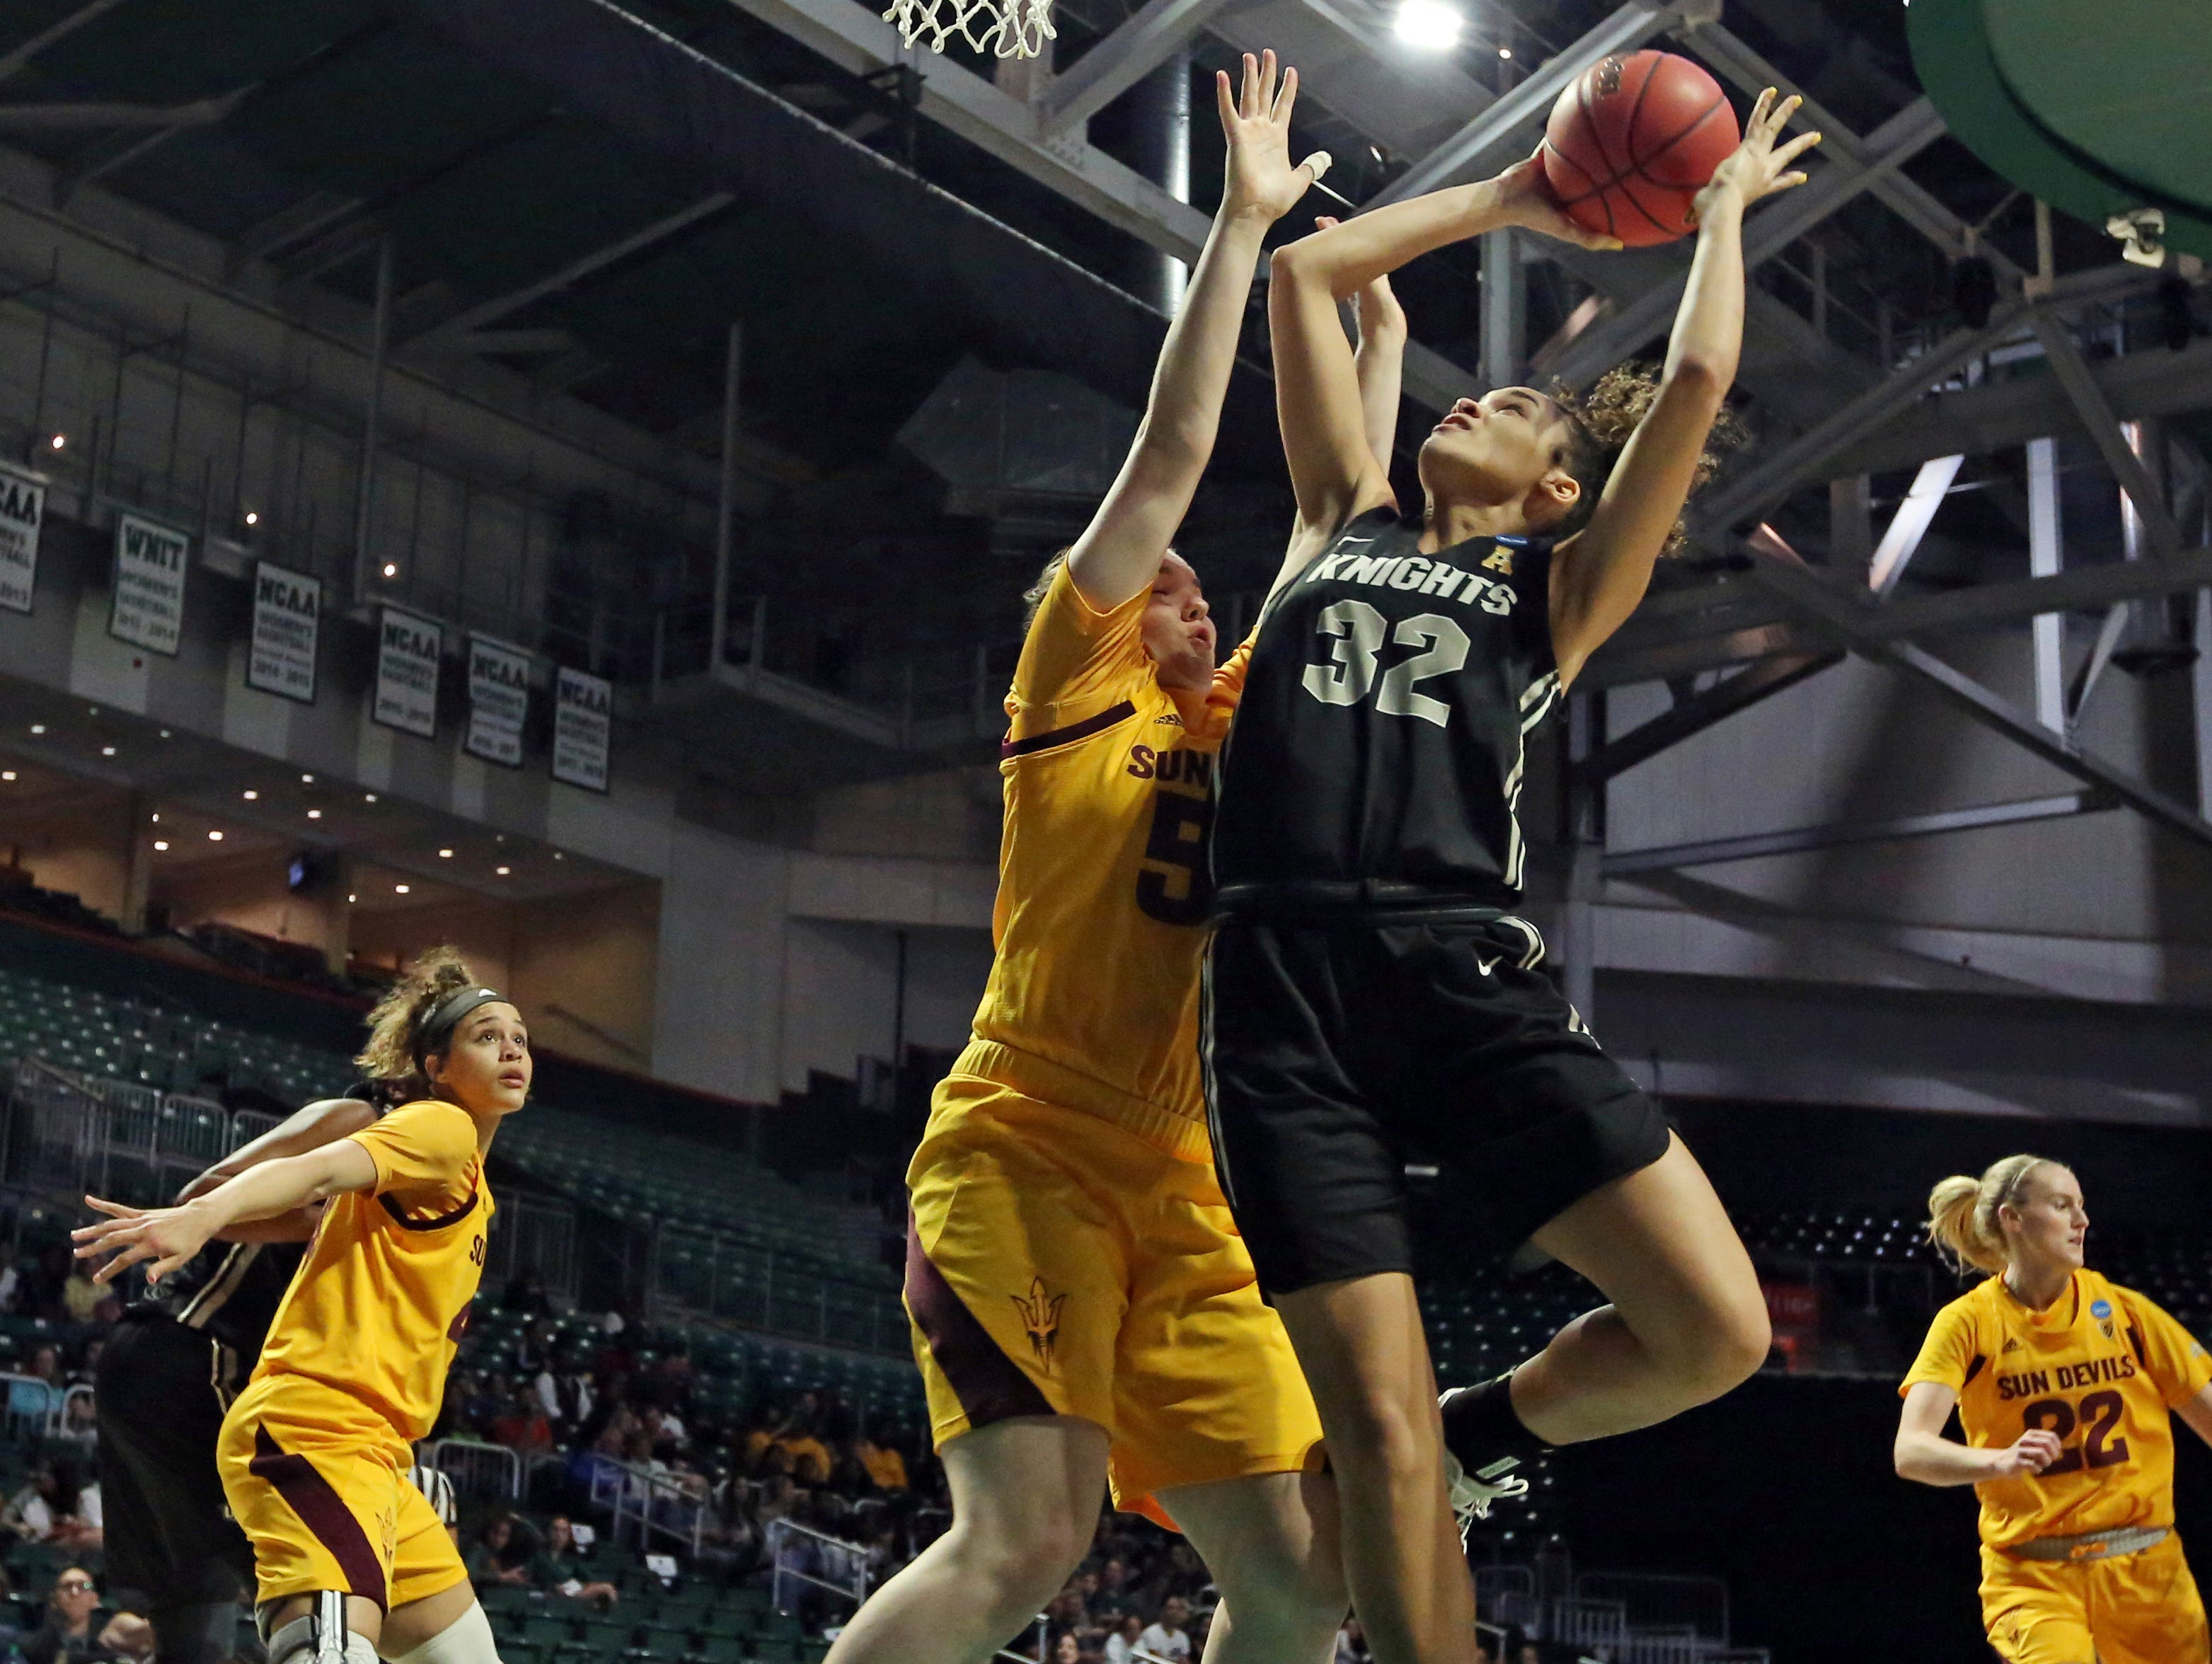 UCF forward Brittney Smith (32) drives to the basket around Arizona State forward Jamie Ruden (52), during a first round women's college basketball game in the NCAA Tournament in Friday, March 22, 2019, in Coral Gables, Fla. (Al Diaz/The Miami Herald via AP)